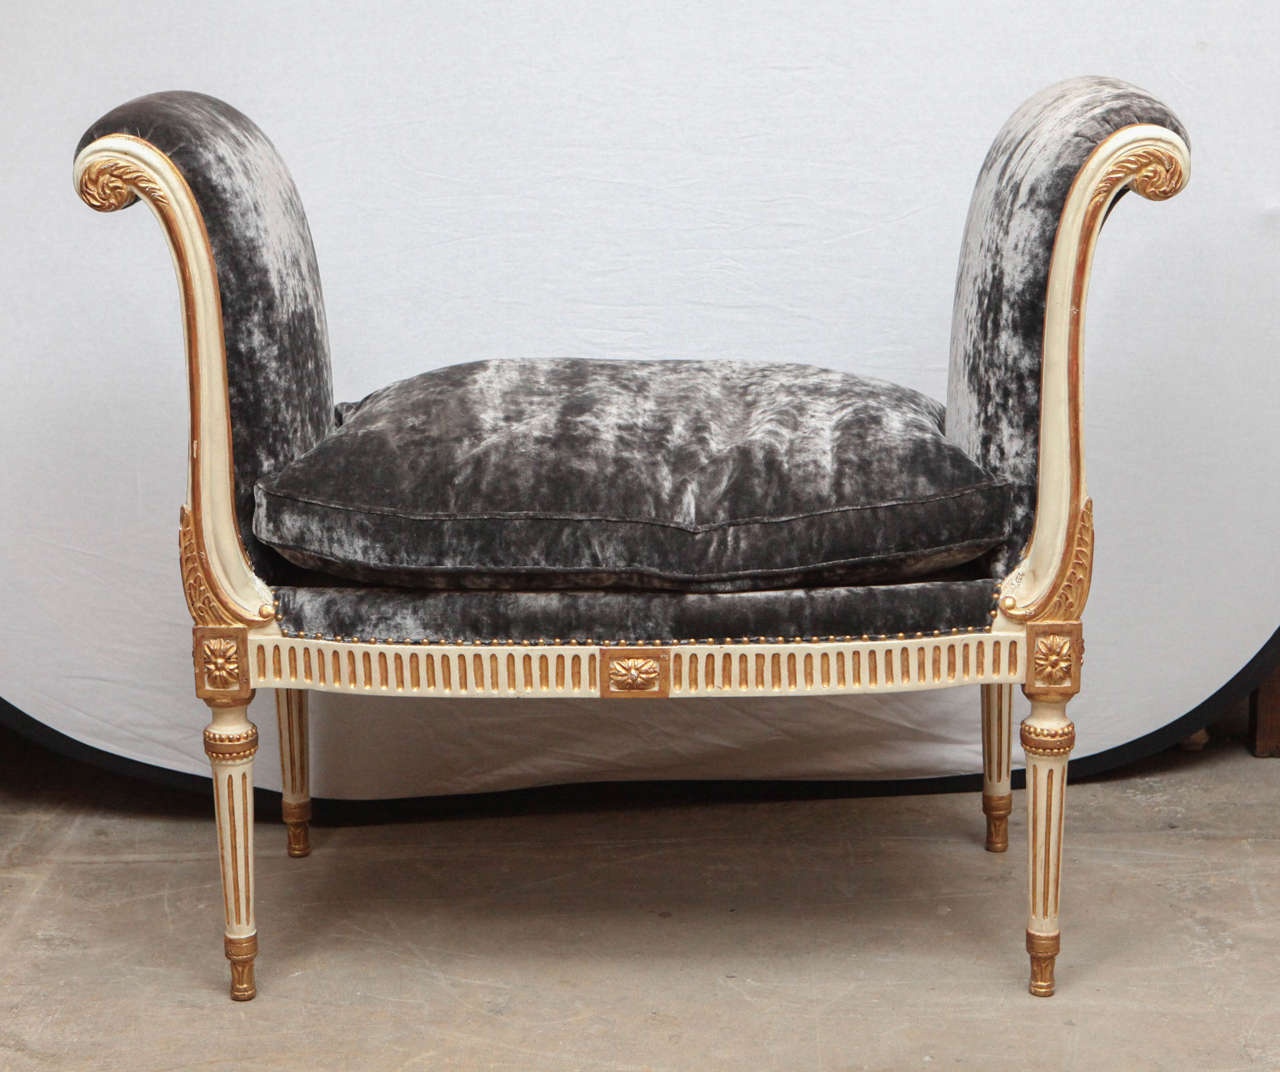 Giltwood And Painted French Style Curled Arm Bench For